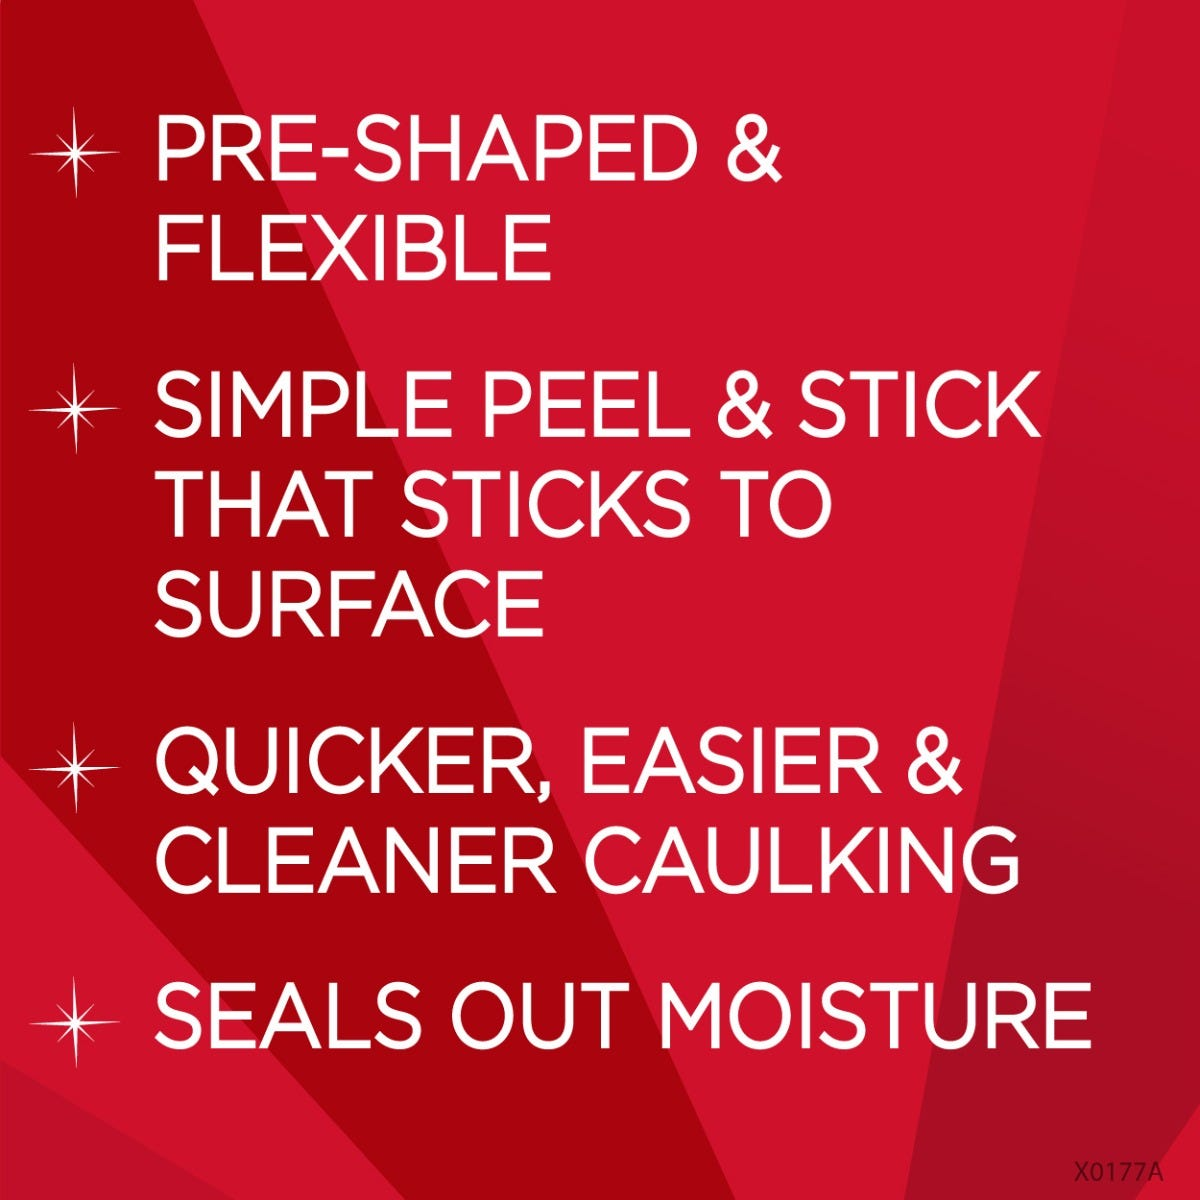 Peel & Stick Caulk benefits